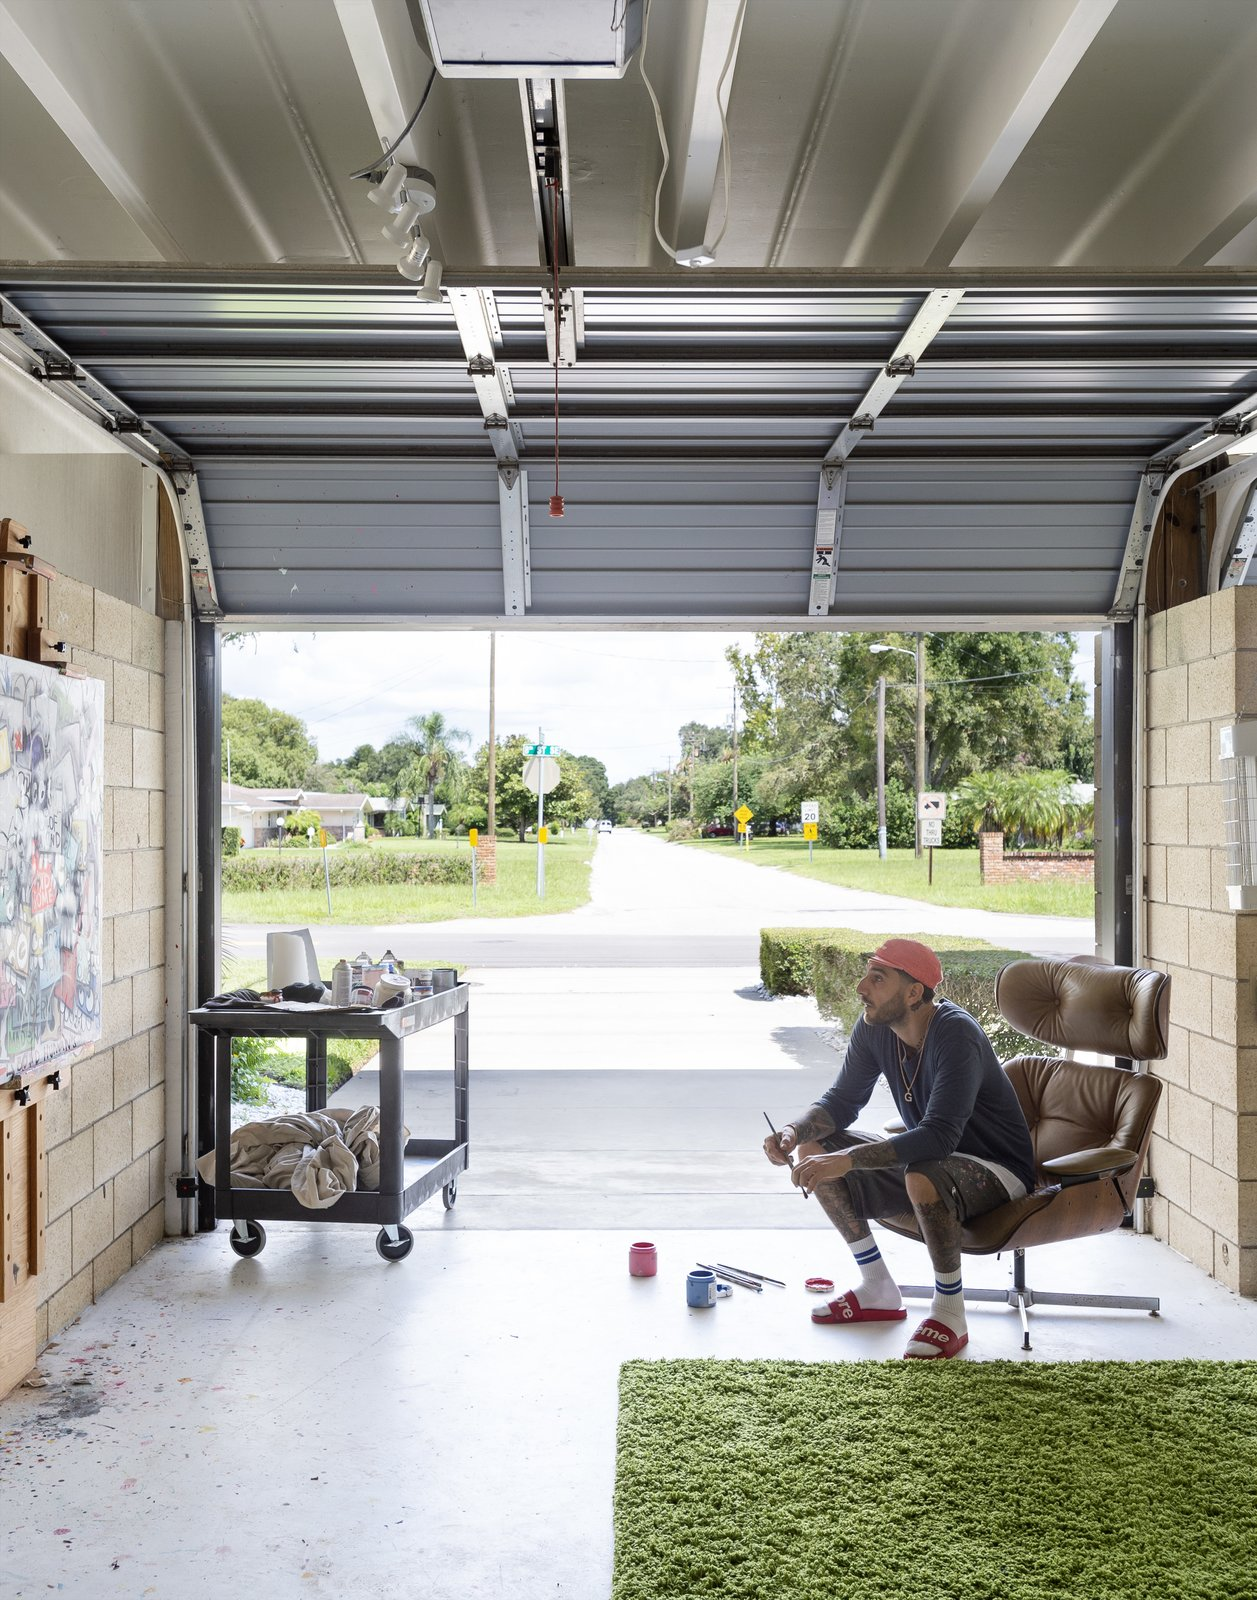 Garage and Garage Conversion Room Type Christopher, known professionally as Flore,  surveys a painting in his garage turned studio.  My Photos from Pop Art, Street Art, and Space Age Furniture Collide at a Painter's Midcentury Ranch Home in Florida